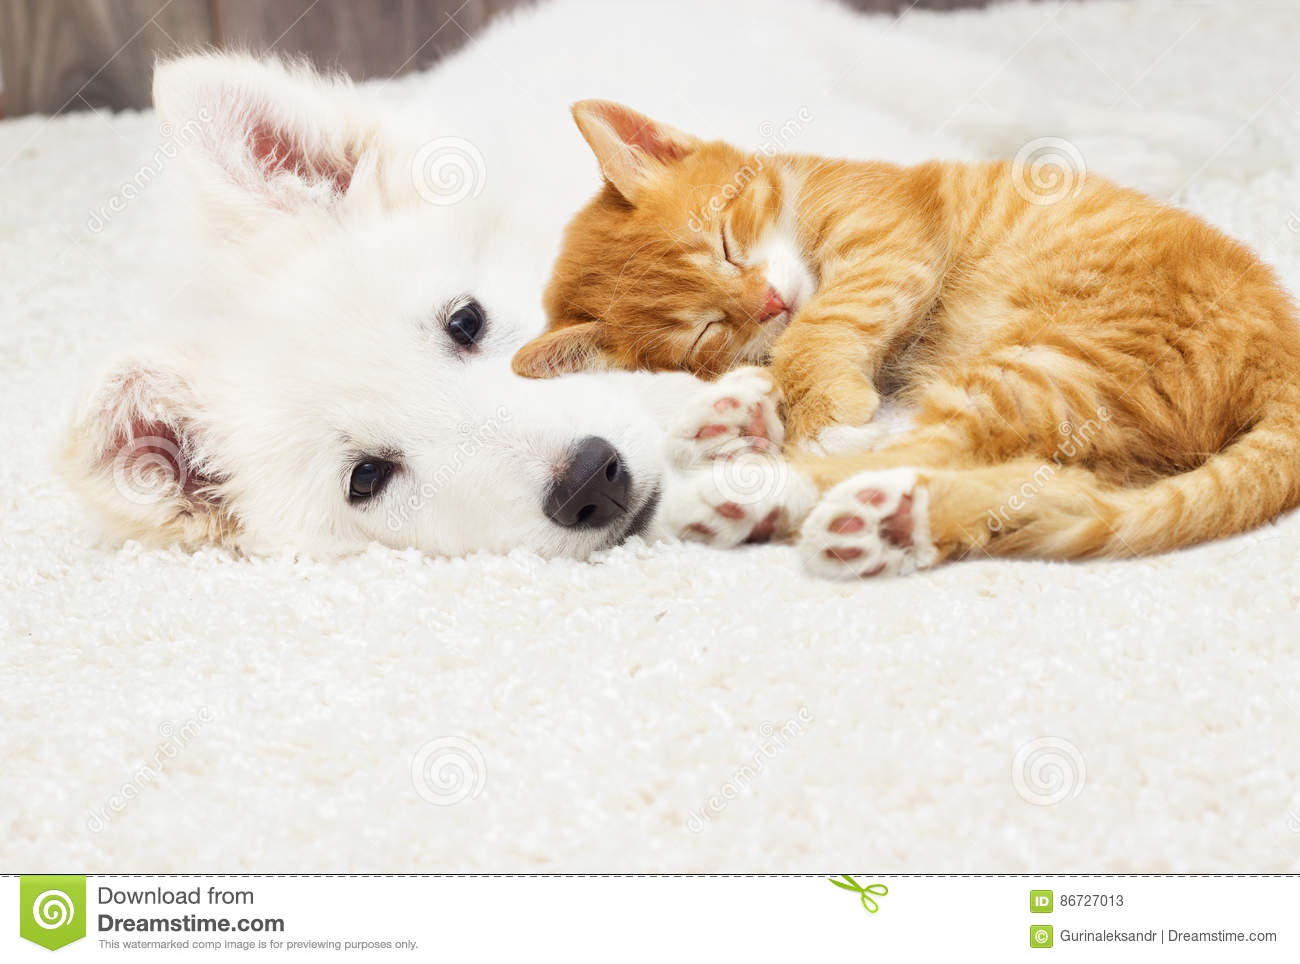 Berger Blanc Suisse Puppy And Kitten Stock Image Image Of Space